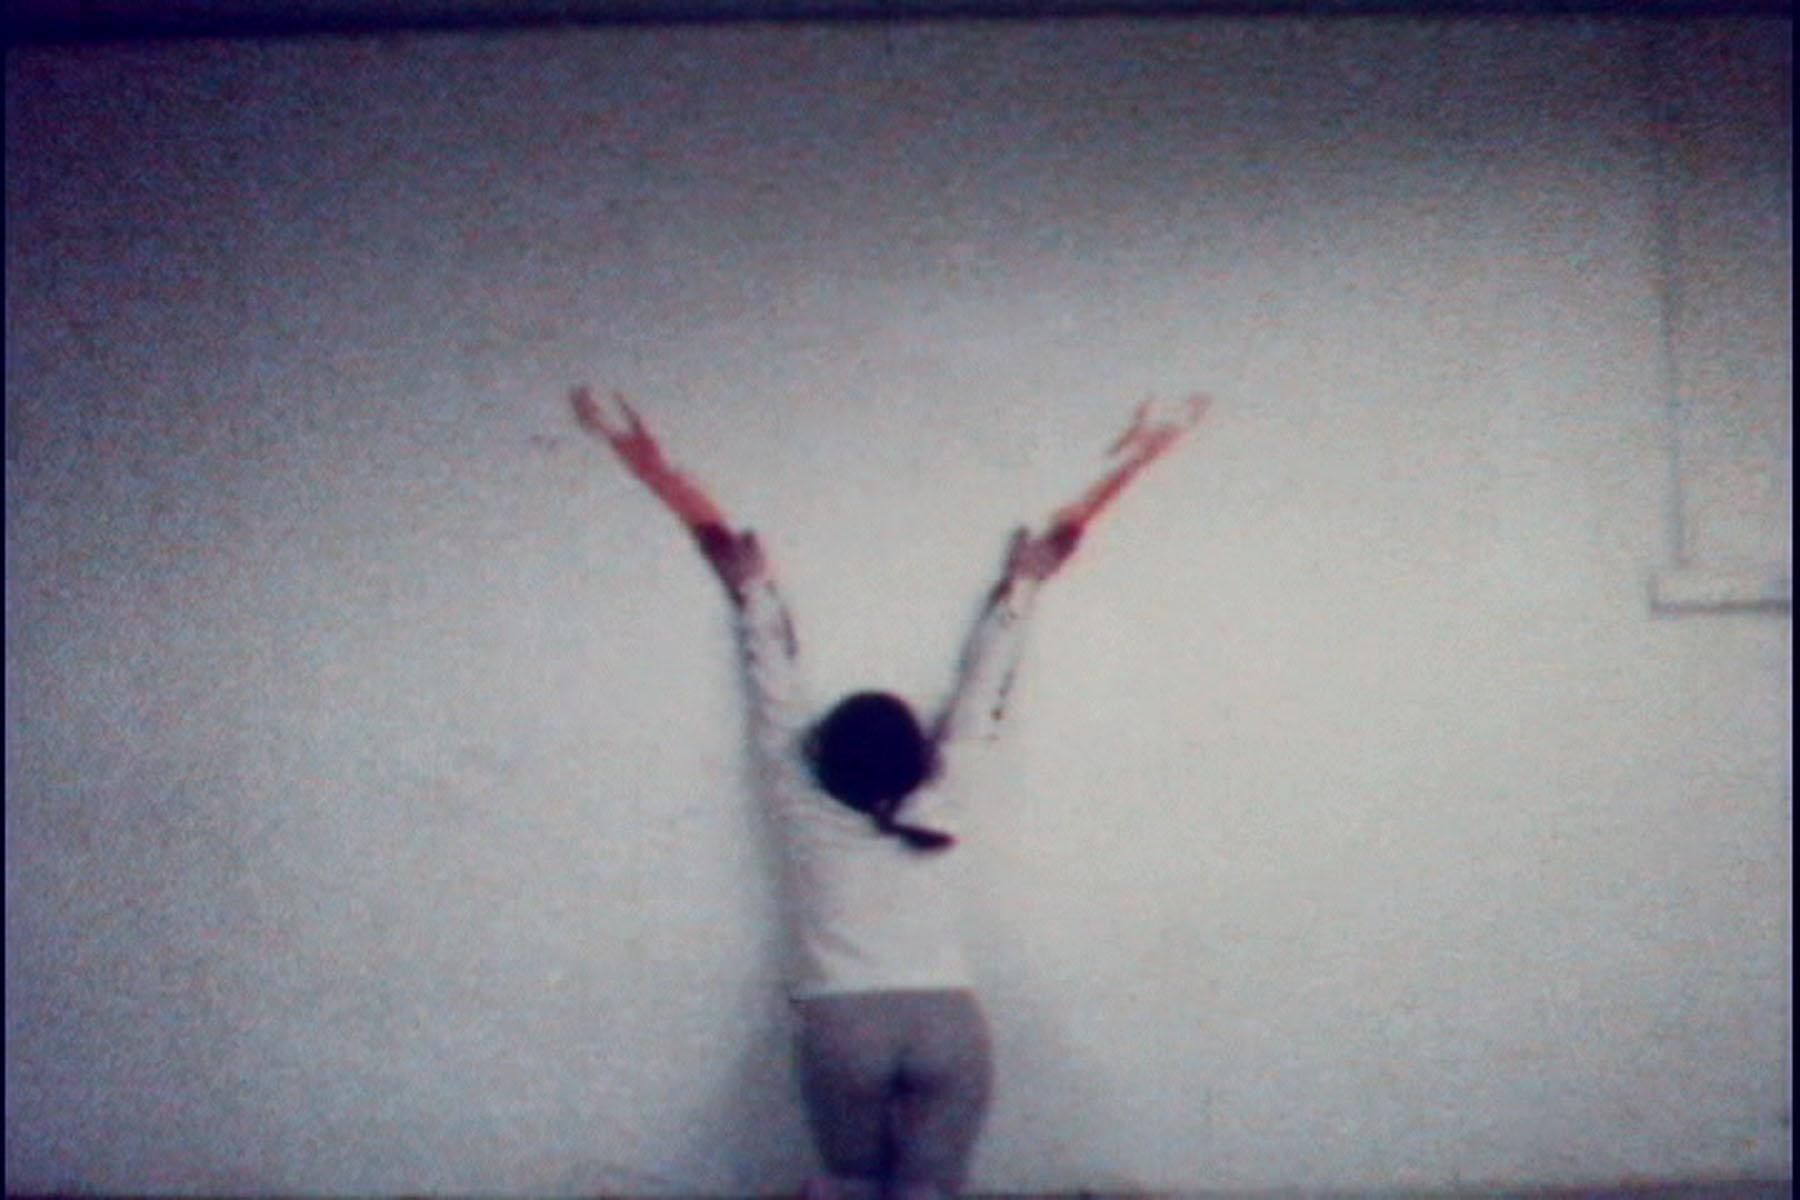 Ana Mendieta - Untitled (Blood Sign #2/Body Tracks), 1974 - Museo Reina Sofía, Madrid